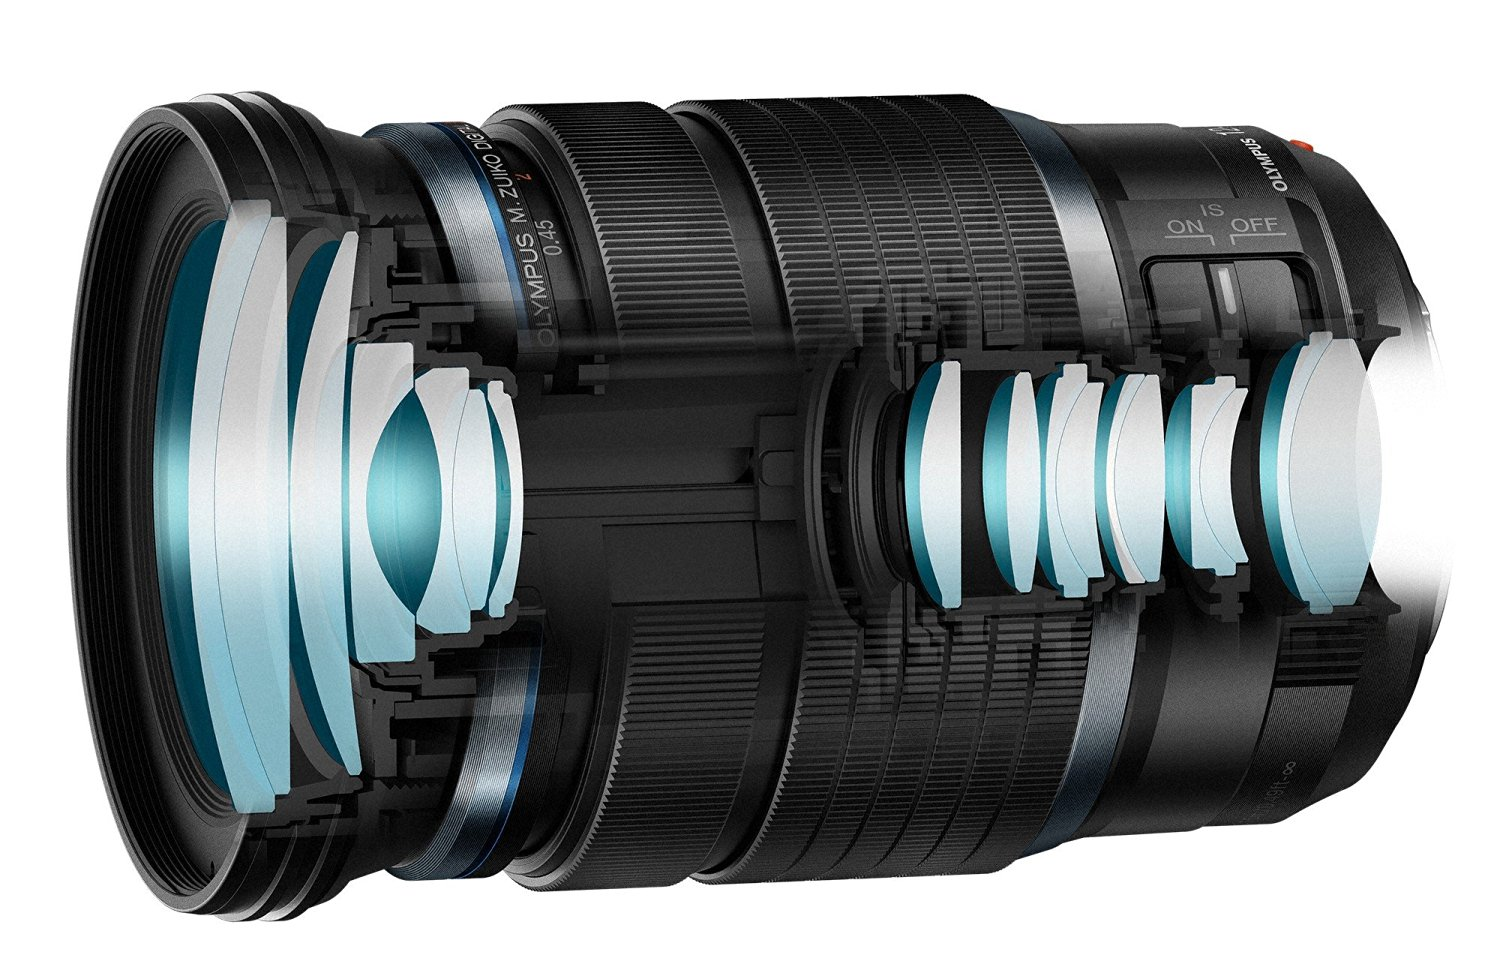 amazon product image that shows the internal lens structure of the 12-100mm f4.0 PRO